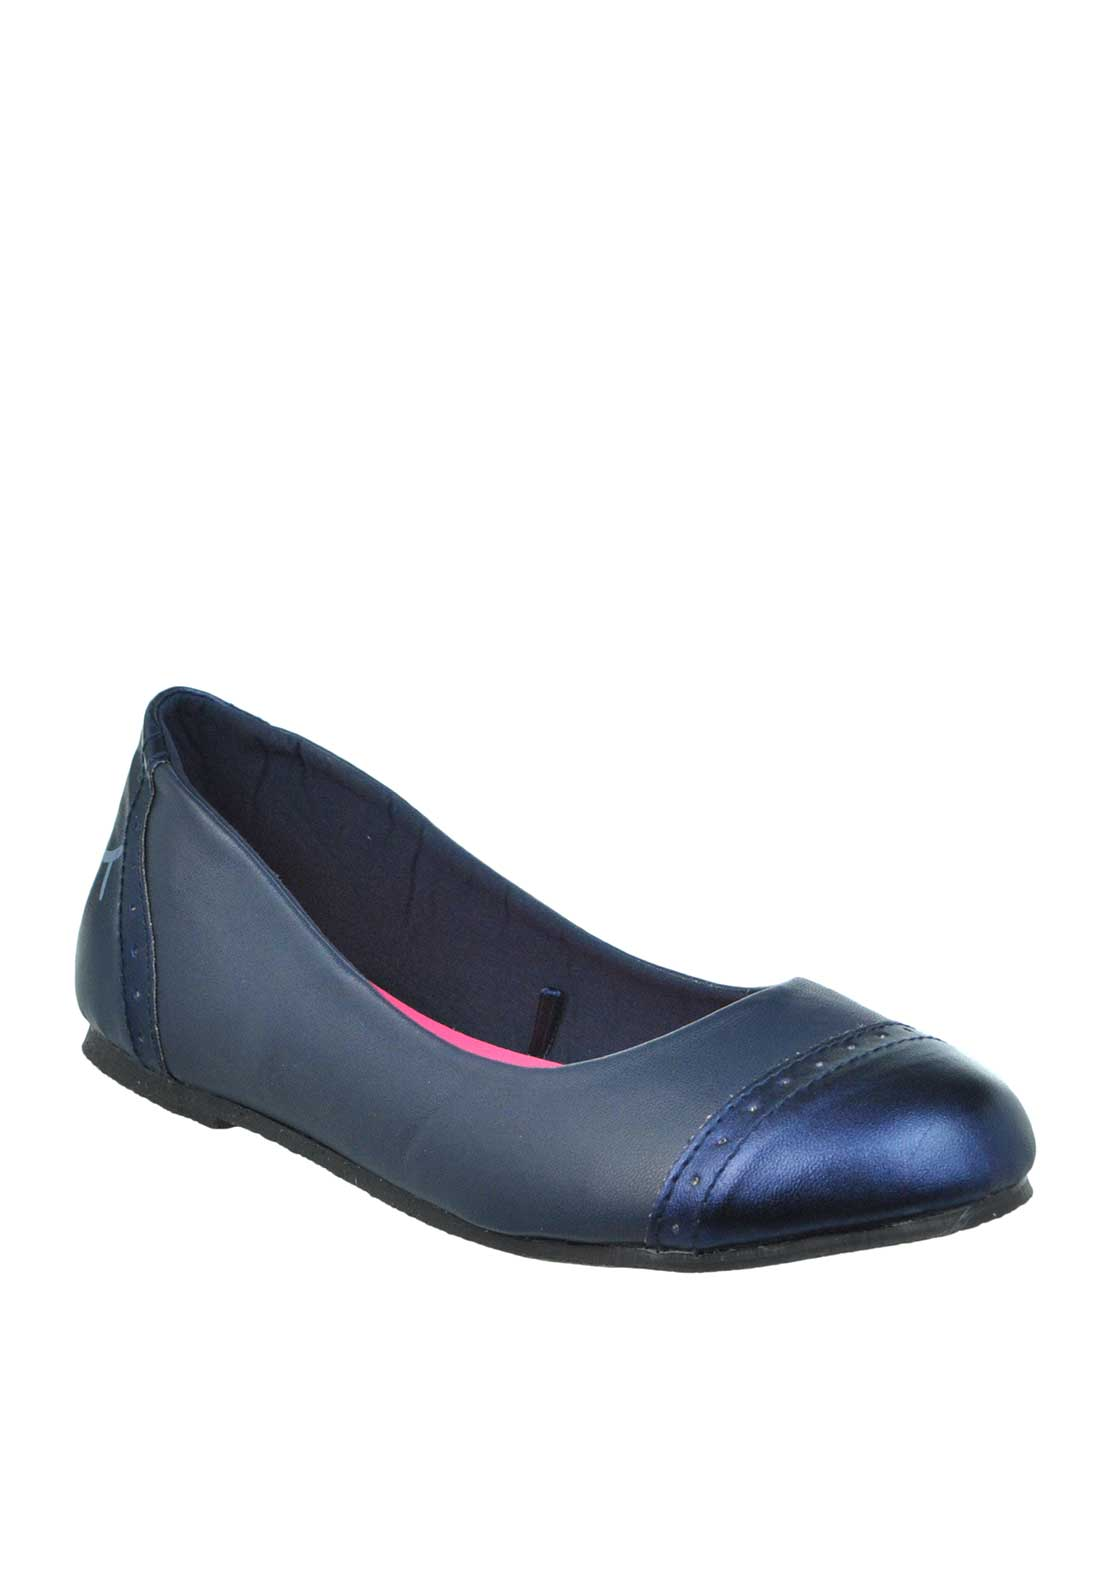 Billieblush Girls Leather Look Eyelash Print Pumps, Navy